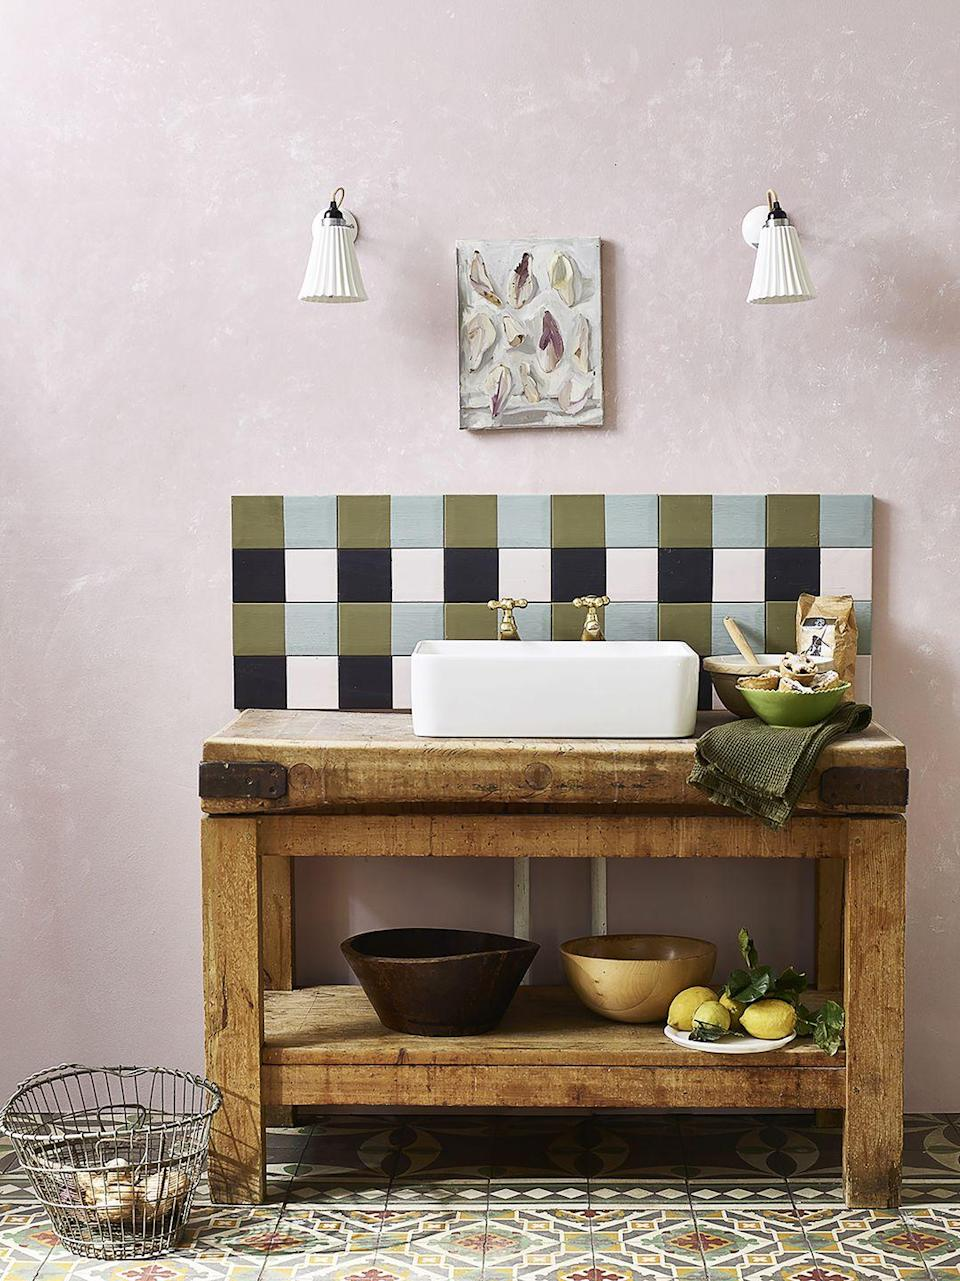 """<p>For a budget-friendly update, consider painting existing tiles. Chalk paint adheres well to glazed tiles, but does require sealing and is best used on areas not exposed to harsh cleaning or excess water.</p><p>Pictured: Tiles in Olive, Athenian Black, Antoinette and Duck Egg Blue matt chalk paint; <a href=""""https://www.anniesloan.com/"""" rel=""""nofollow noopener"""" target=""""_blank"""" data-ylk=""""slk:Annie Sloan"""" class=""""link rapid-noclick-resp"""">Annie Sloan</a></p>"""